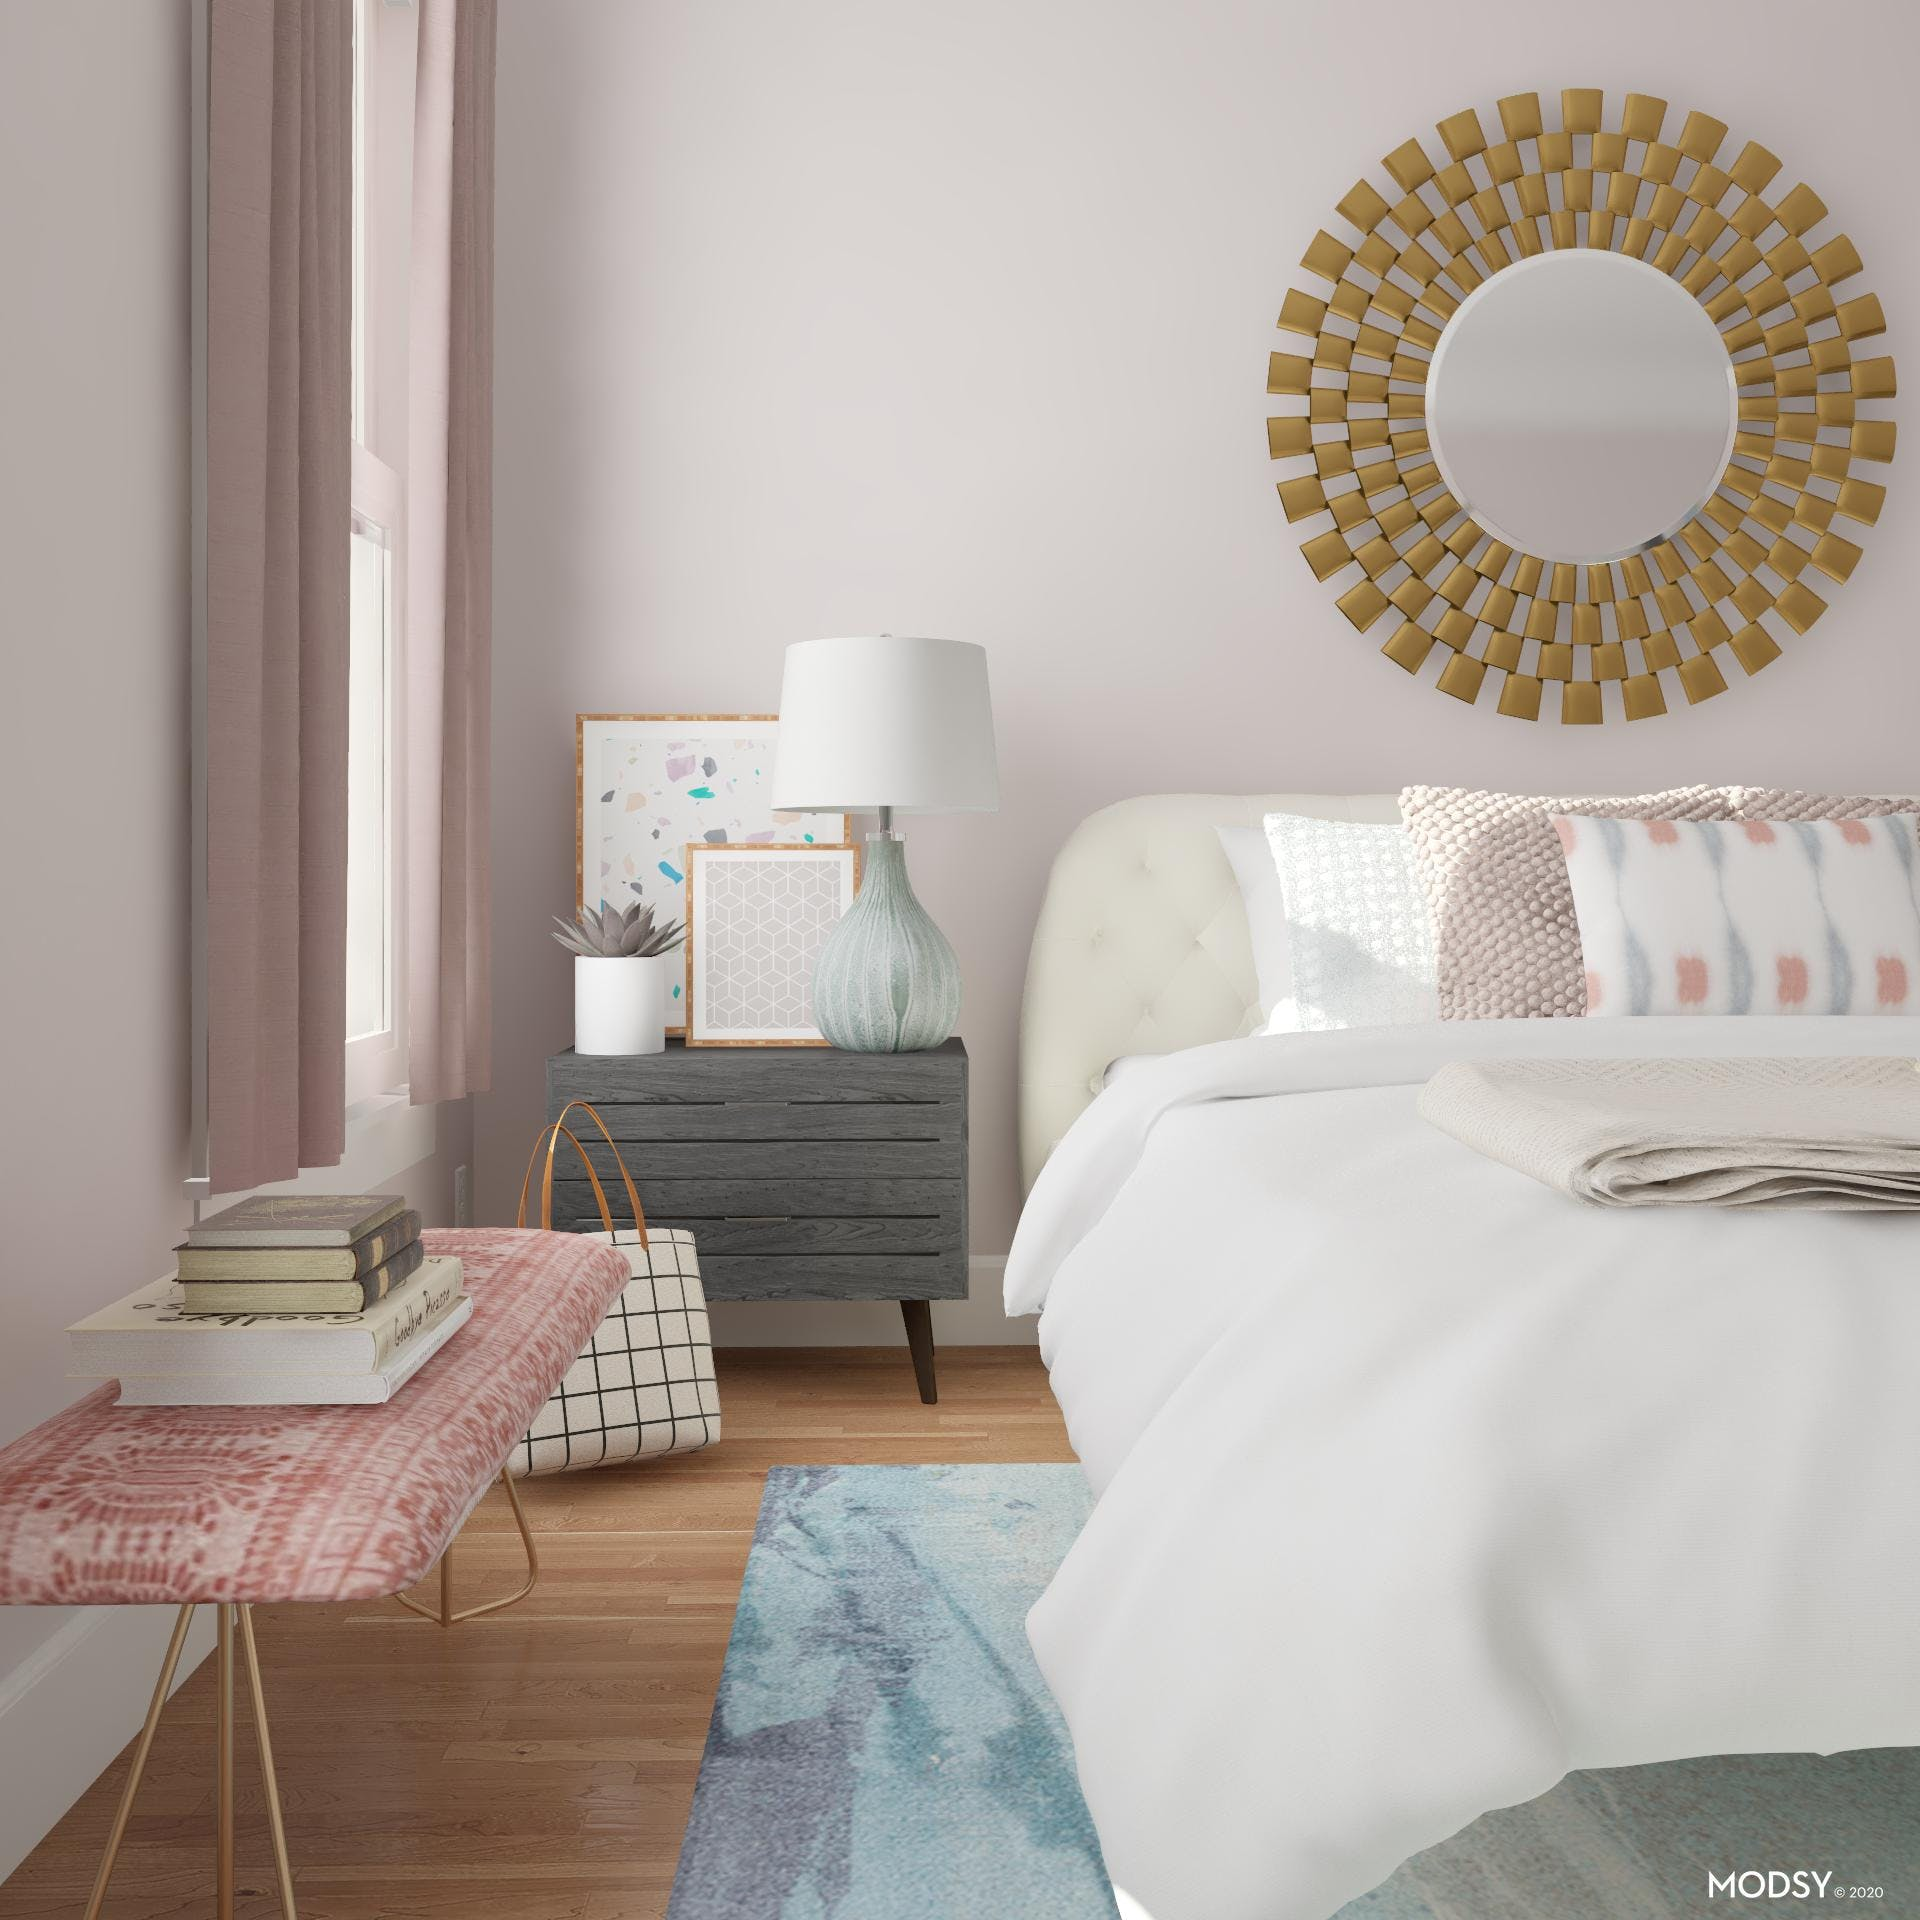 Large Statement Mirror Over The Bed